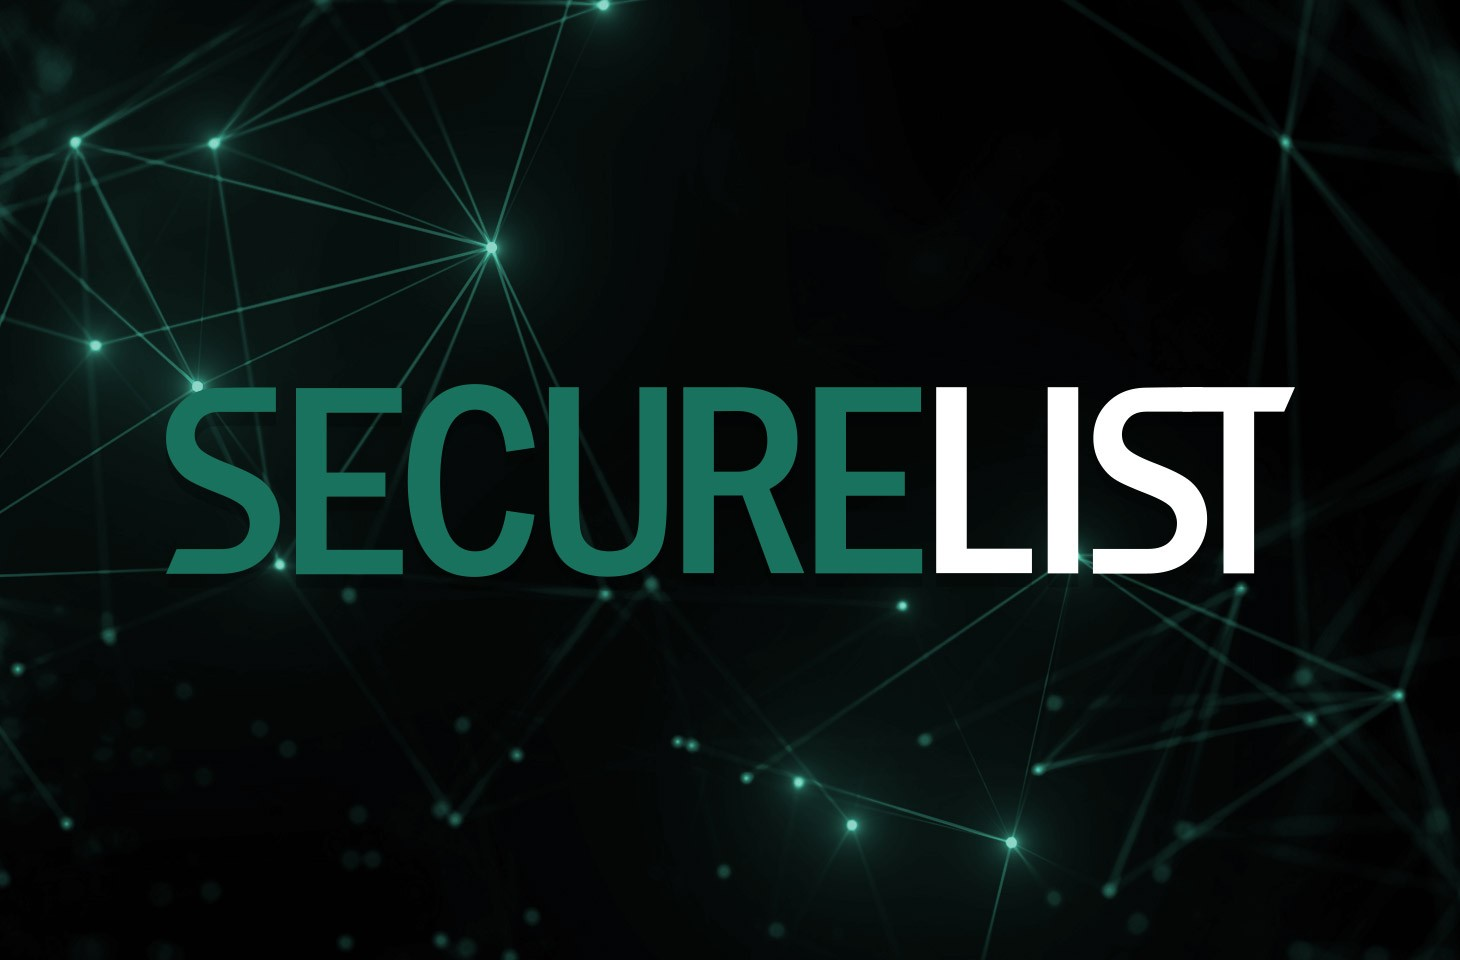 Securelist Kaspersky Lab S Cyberthreat Research And Reports